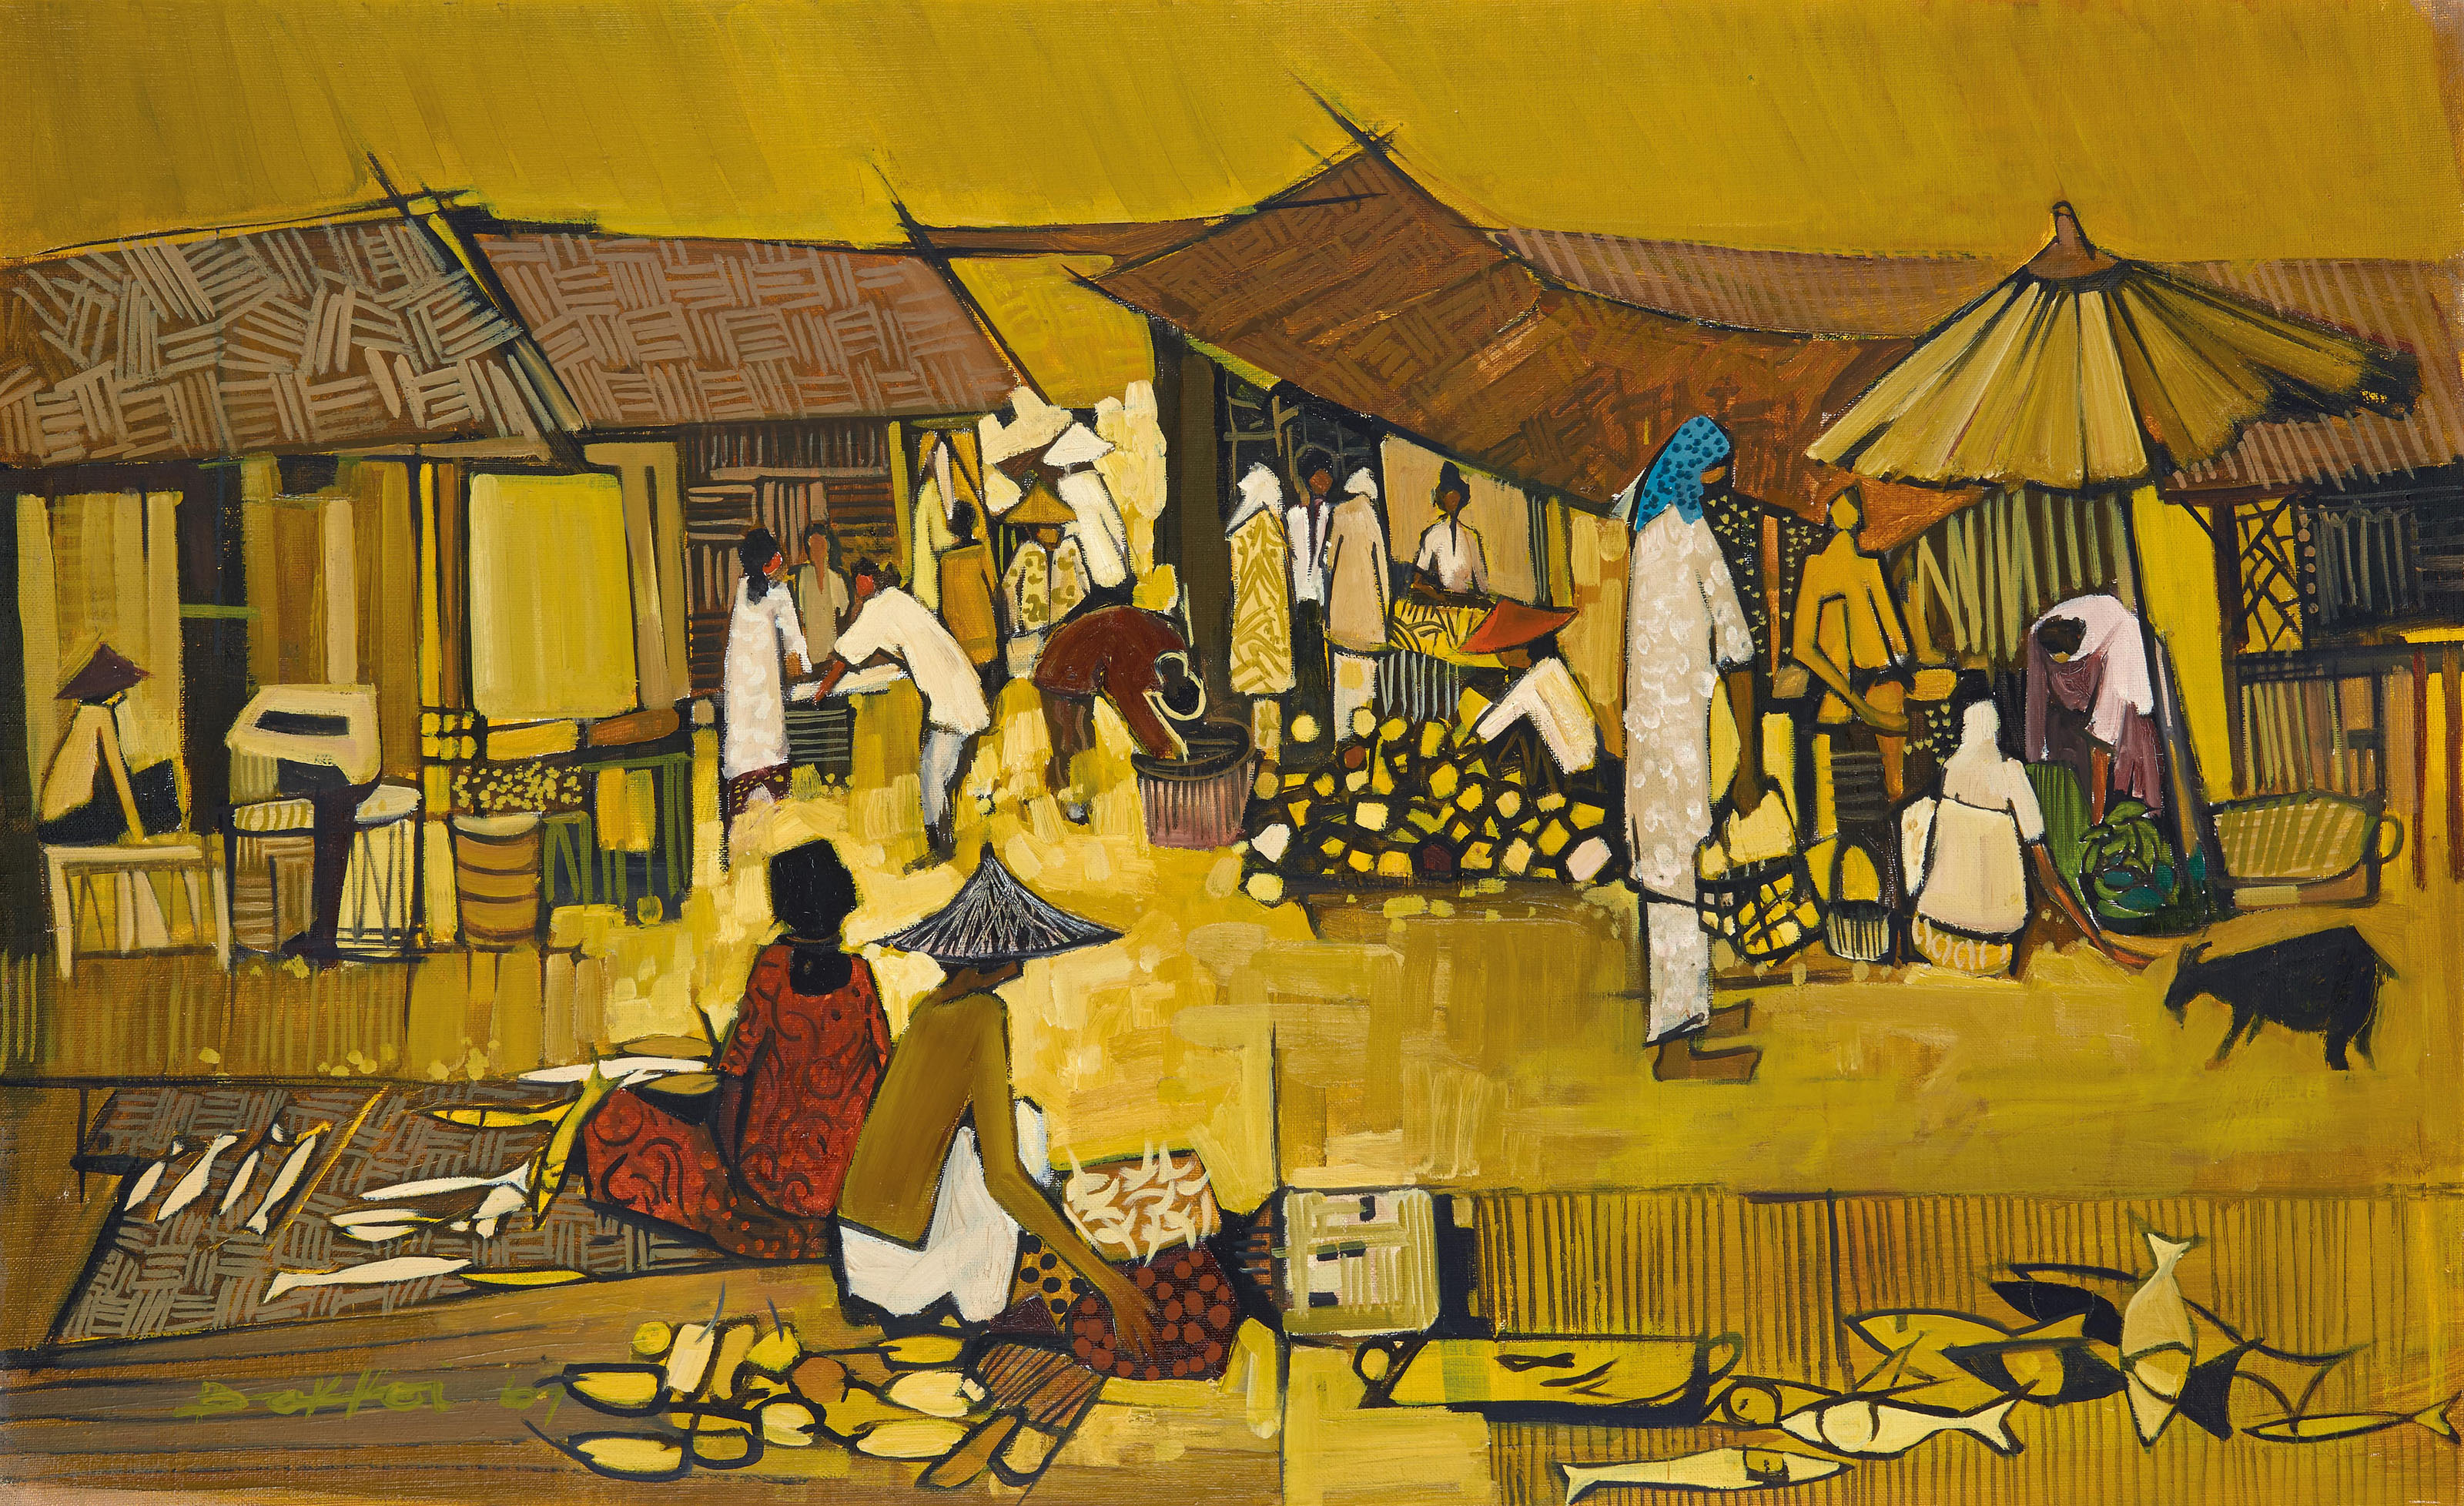 At the Market